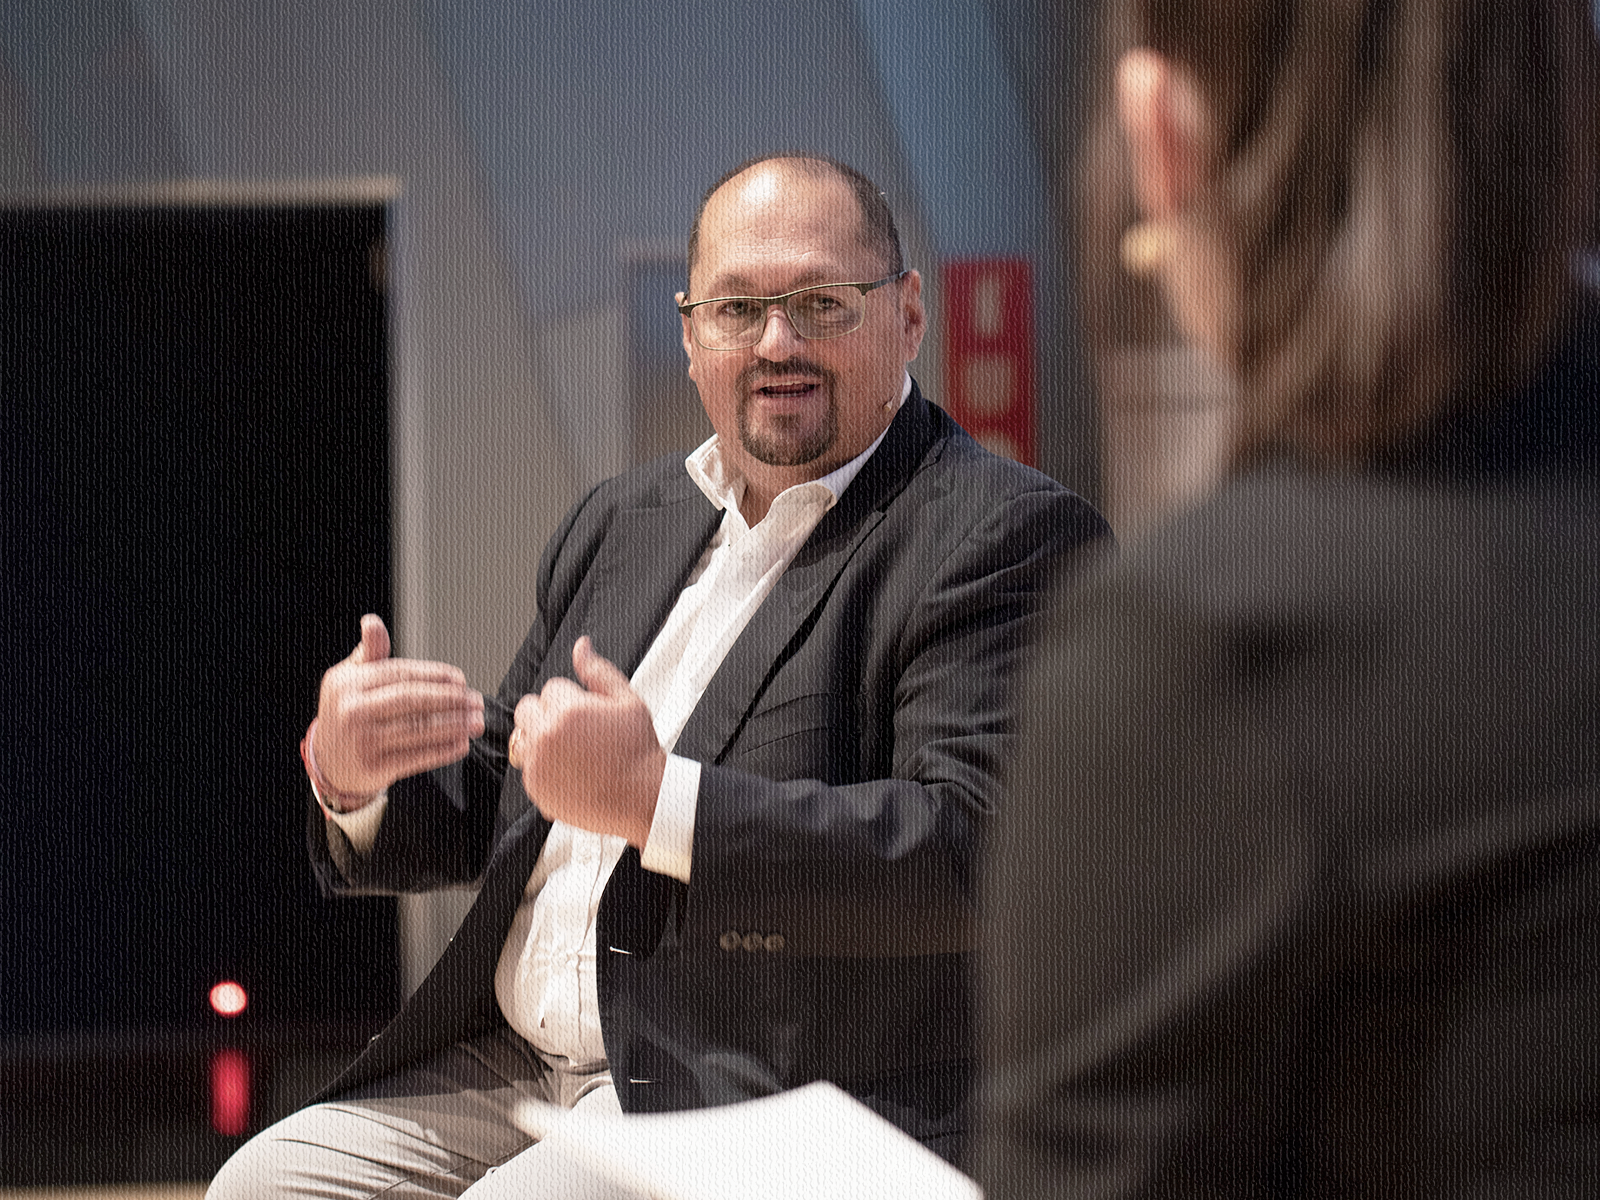 /bfs21/slideshows/6.png